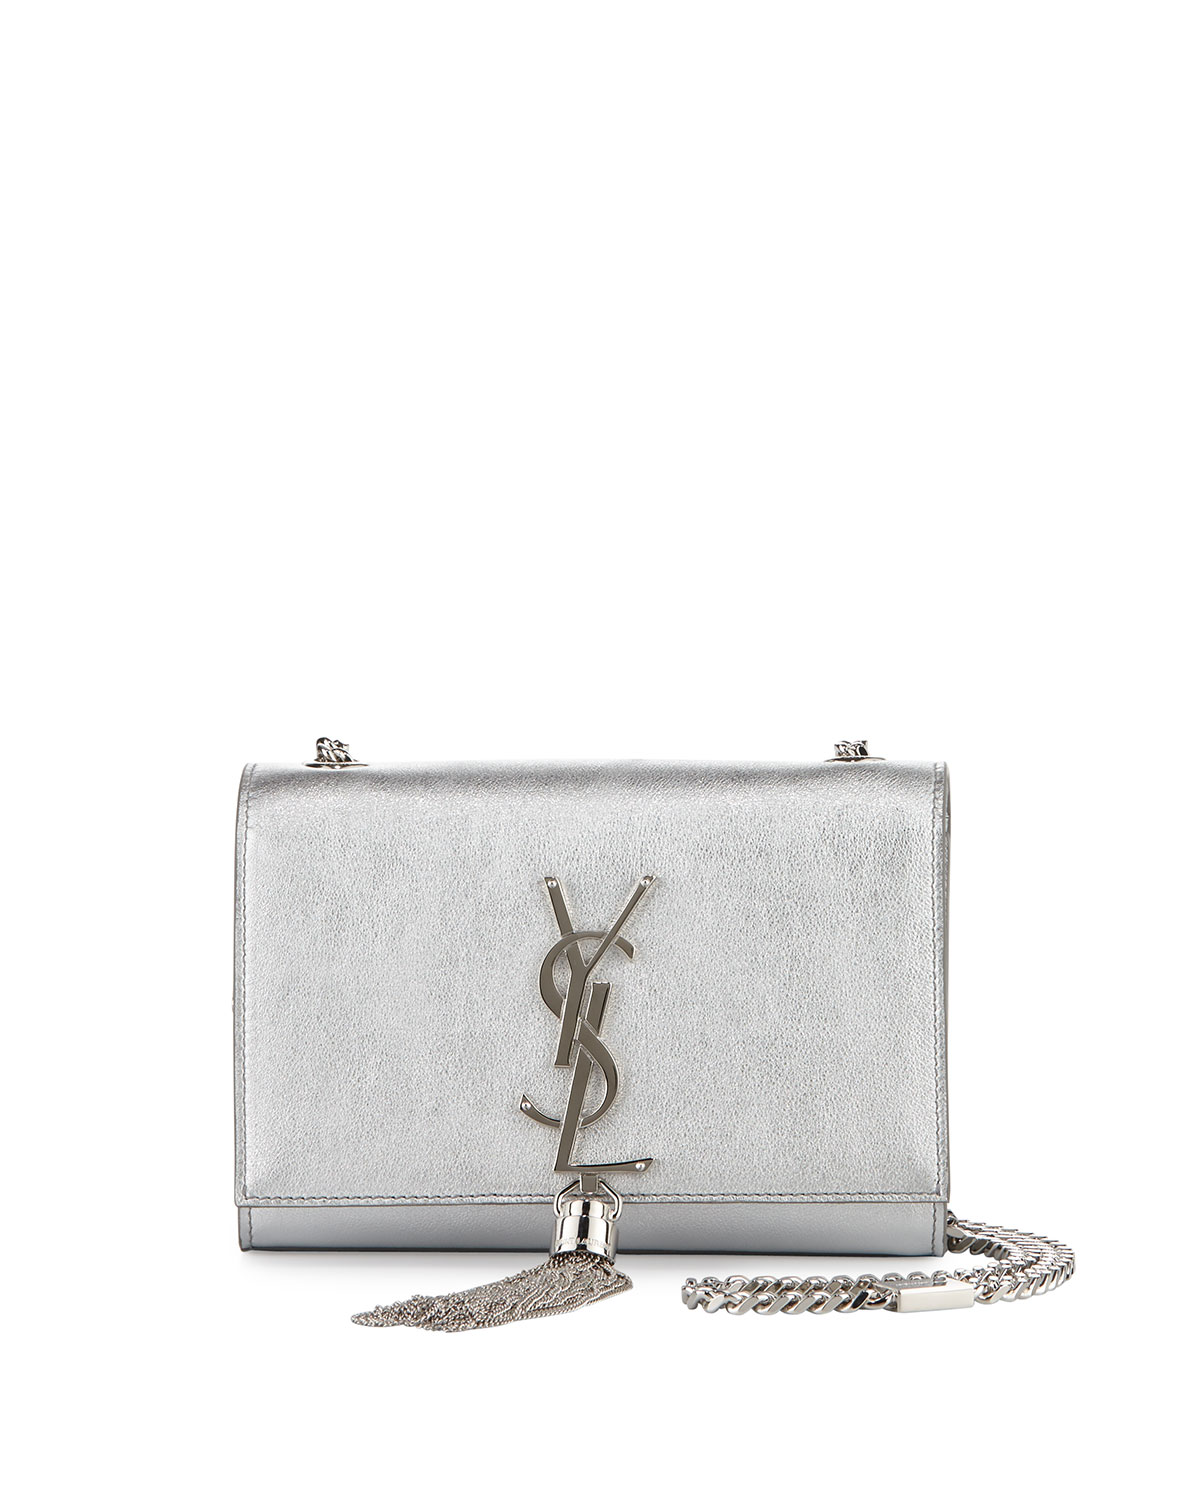 Yves Saint Laurent Monogram Metallic Leather Crossbody Bag, Silver